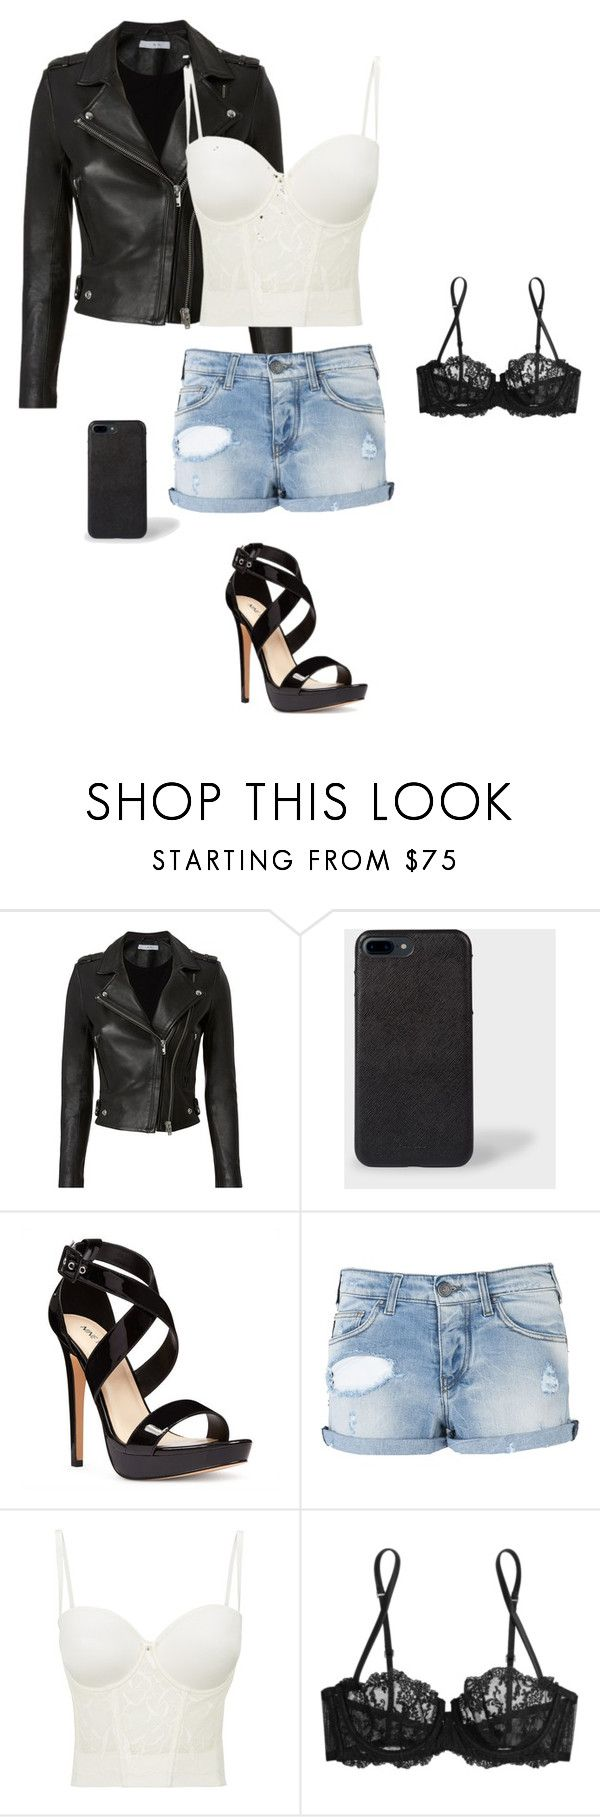 """""""Leather Jacket"""" by gone-girl ❤ liked on Polyvore featuring IRO, Nine West, Armani Jeans, Le Mystère and La Perla"""